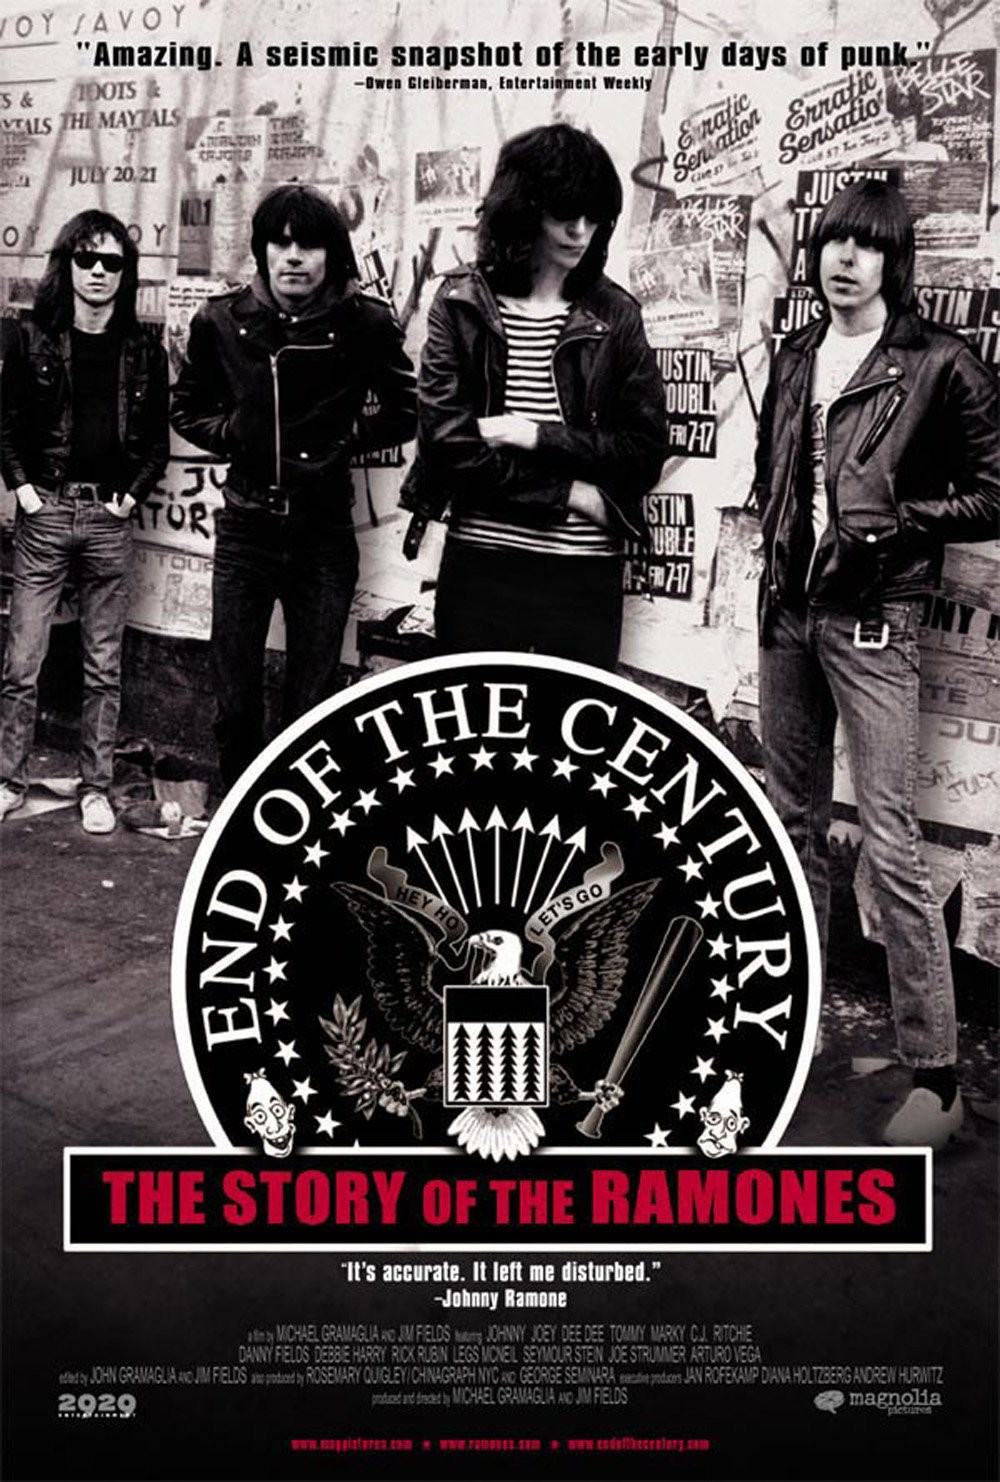 MEJORES DOCUMENTALES MUSICALES End-of-the-century-the-story-of-the-ramones.15755